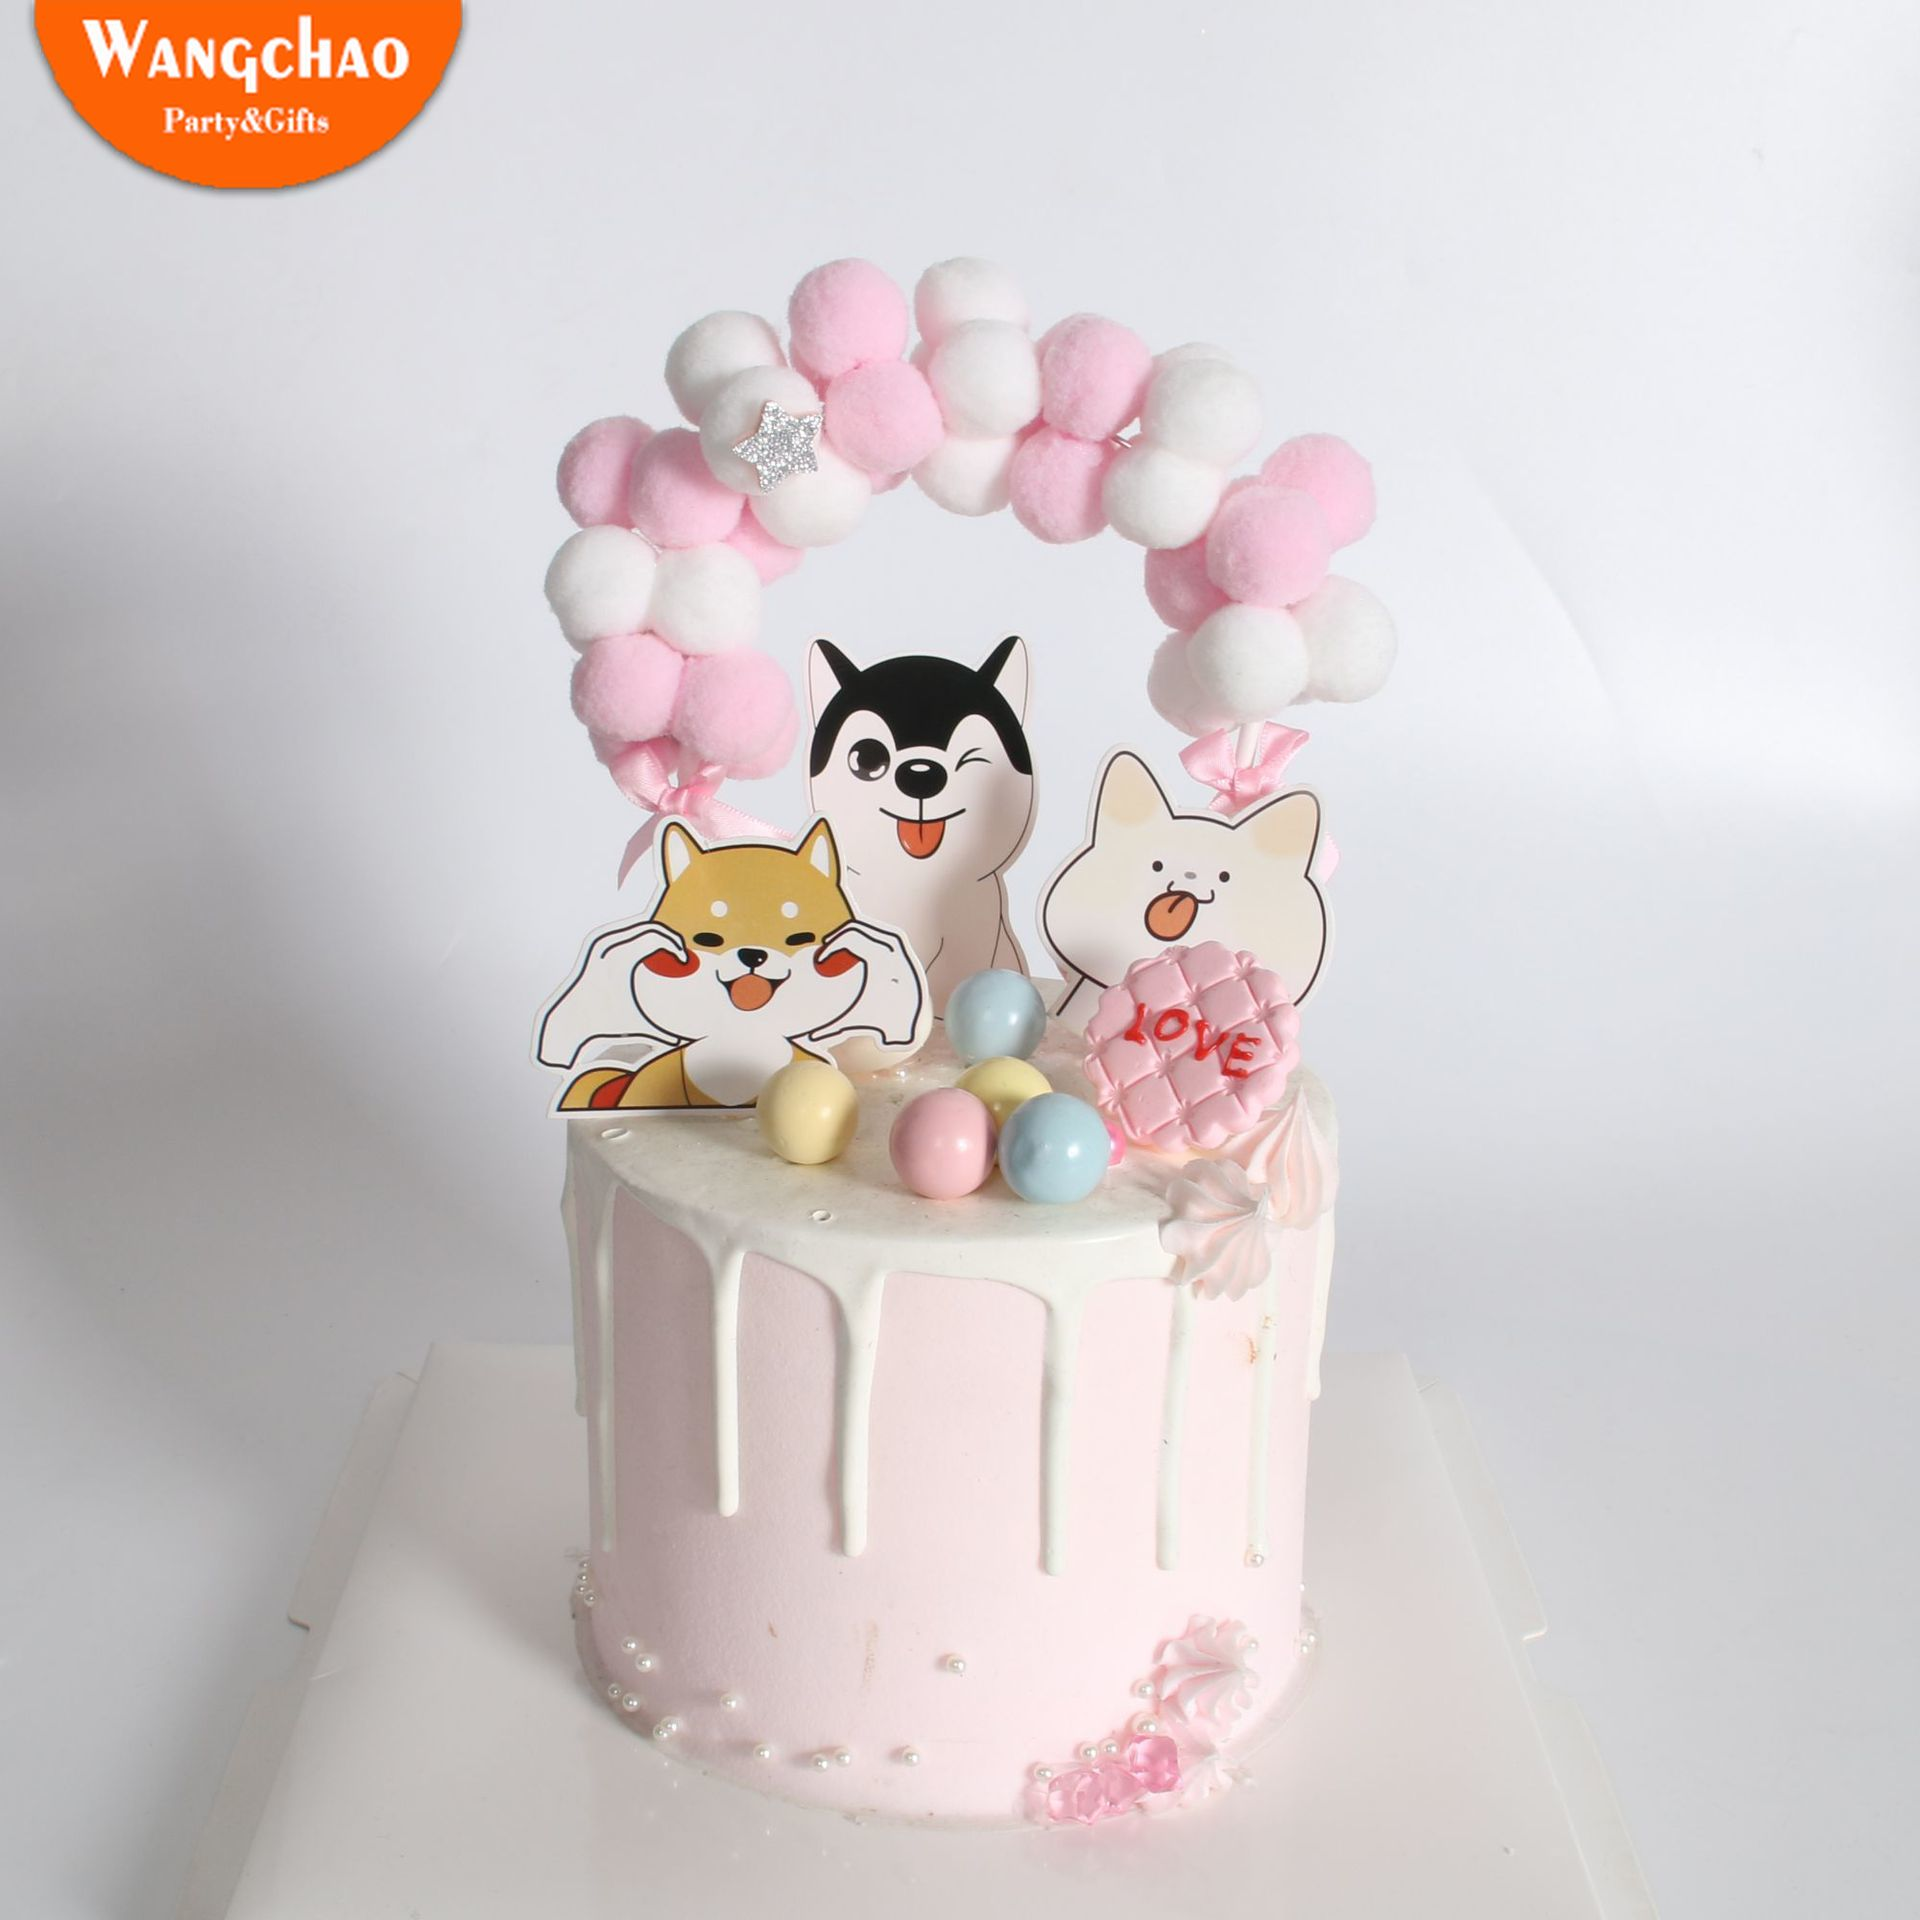 10pcs Cute Pets Birthday Cake Decoration Dogs Theme Cupcake Topper Happy Birthday Party Favors Supplies for Pets in Cake Decorating Supplies from Home Garden